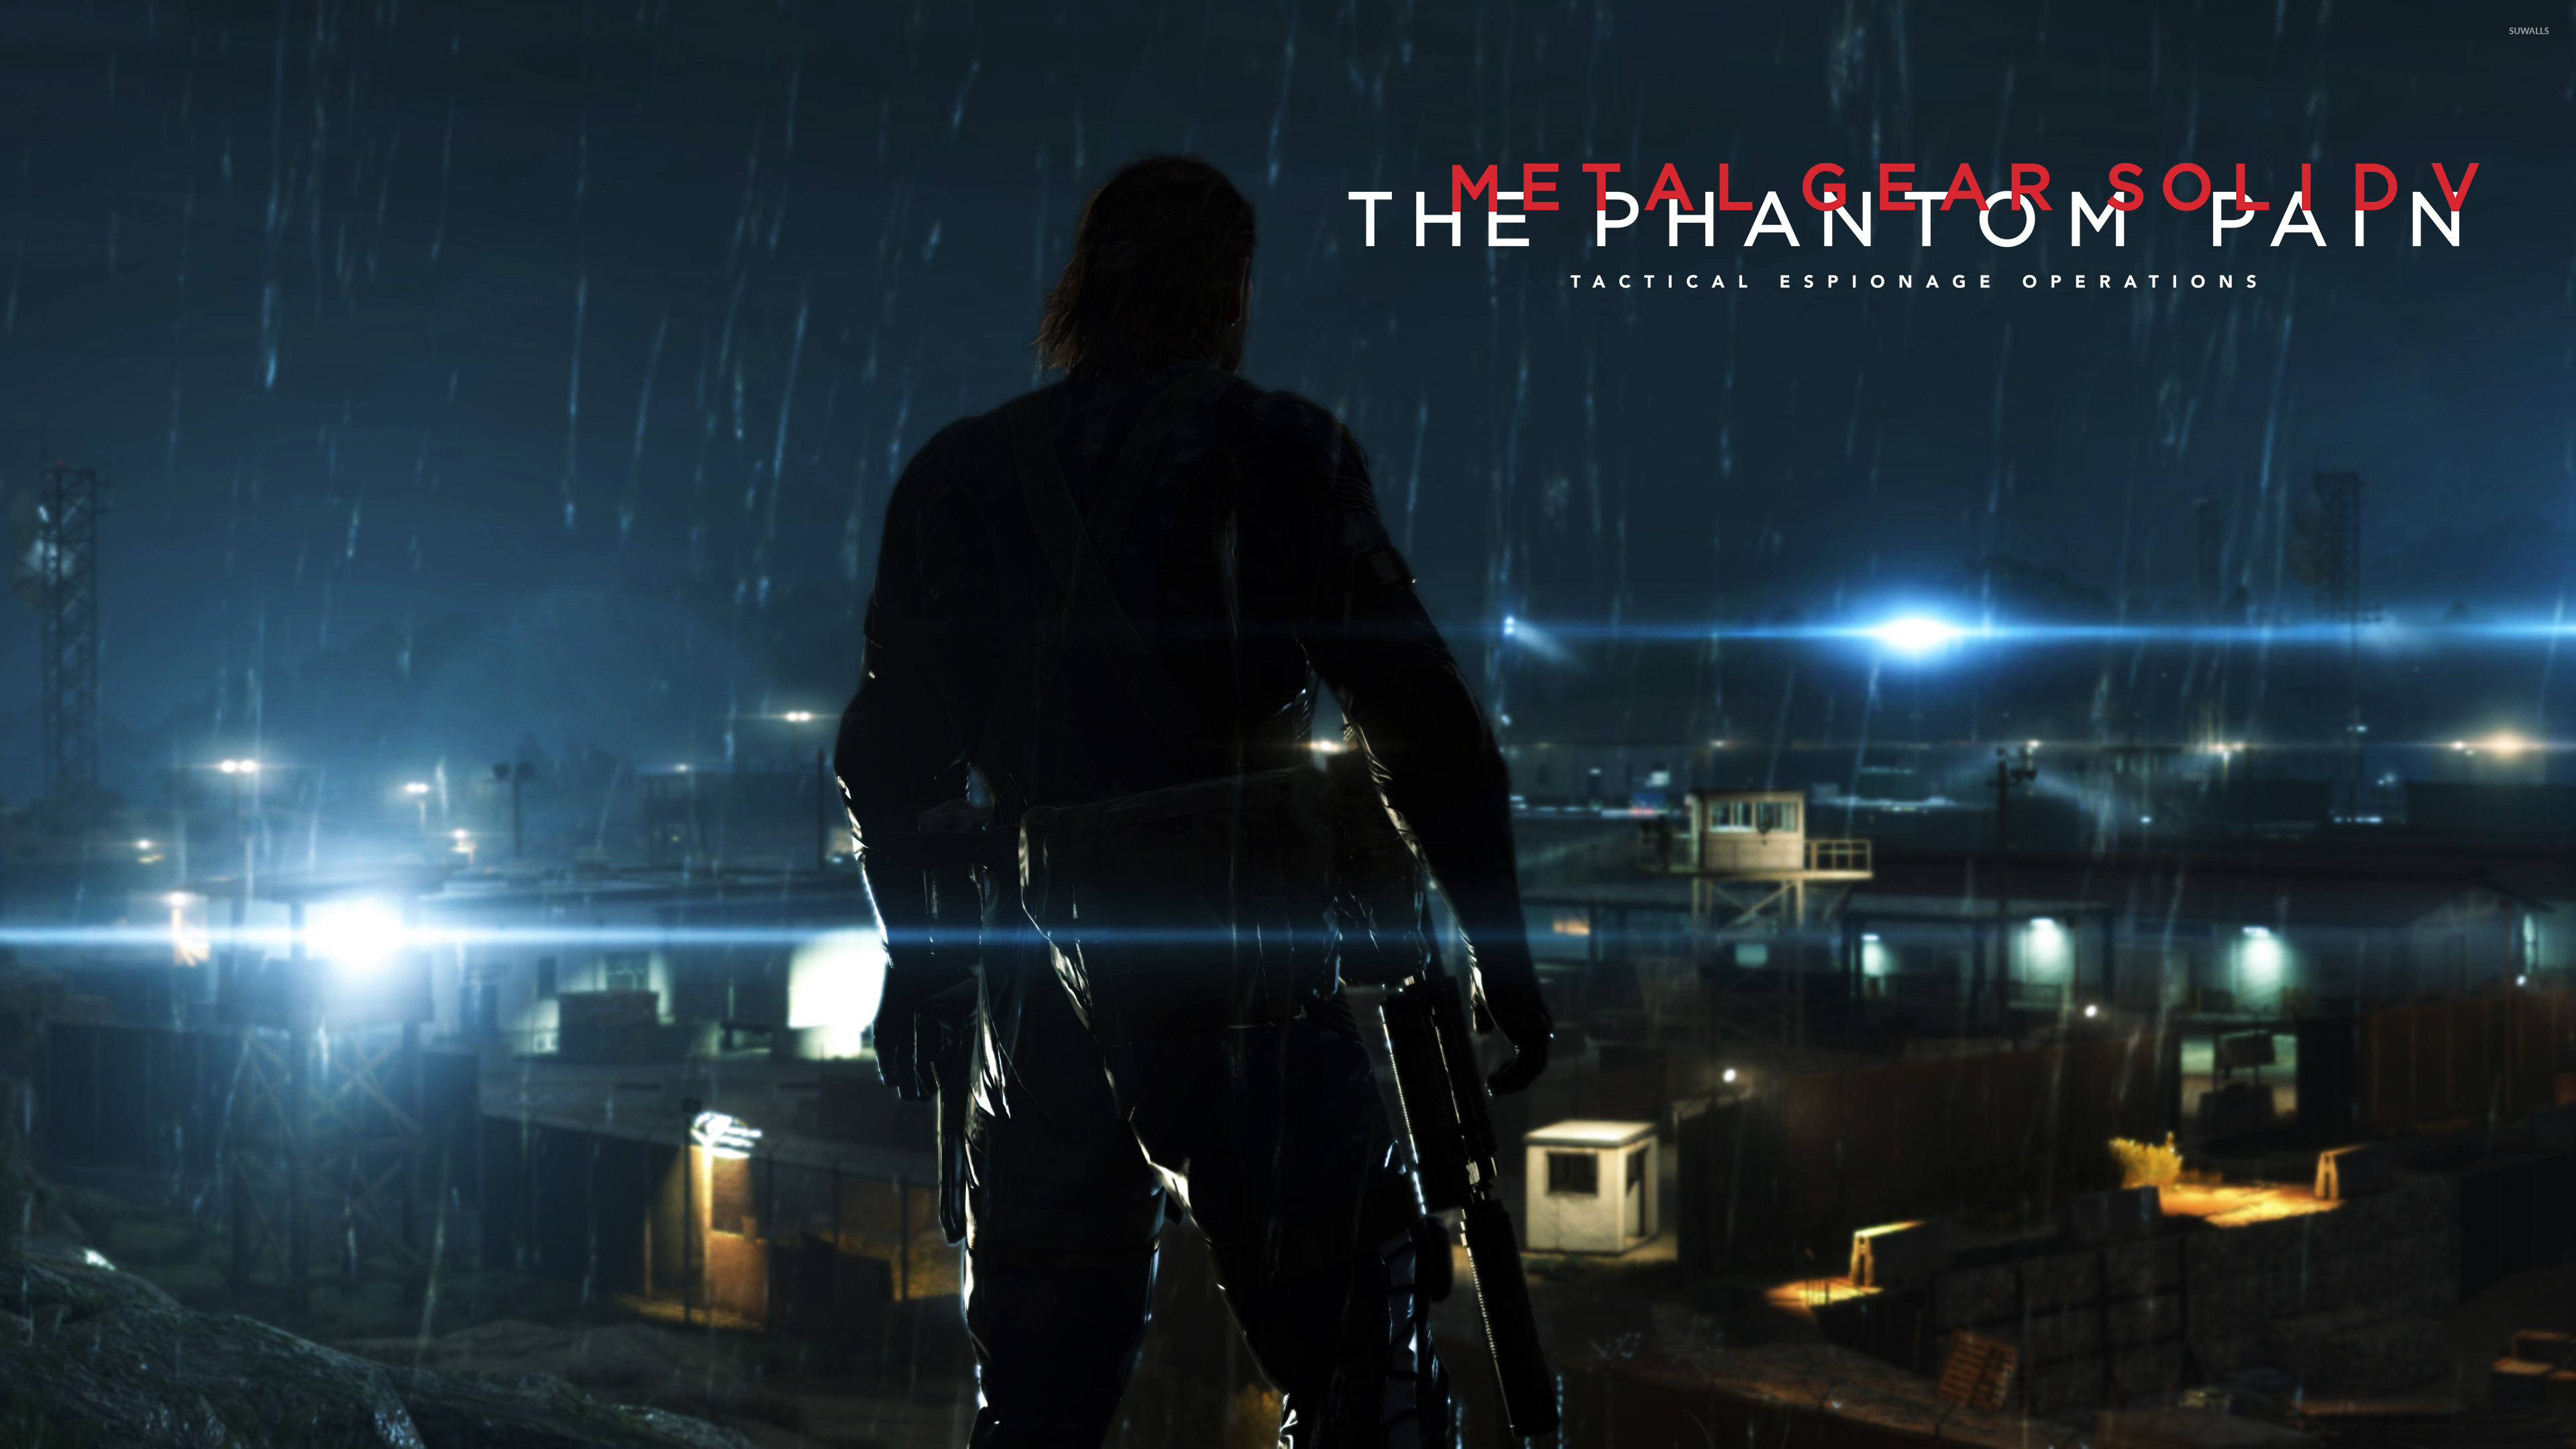 Big Boss In Metal Gear Solid V The Phantom Pain Wallpaper Game